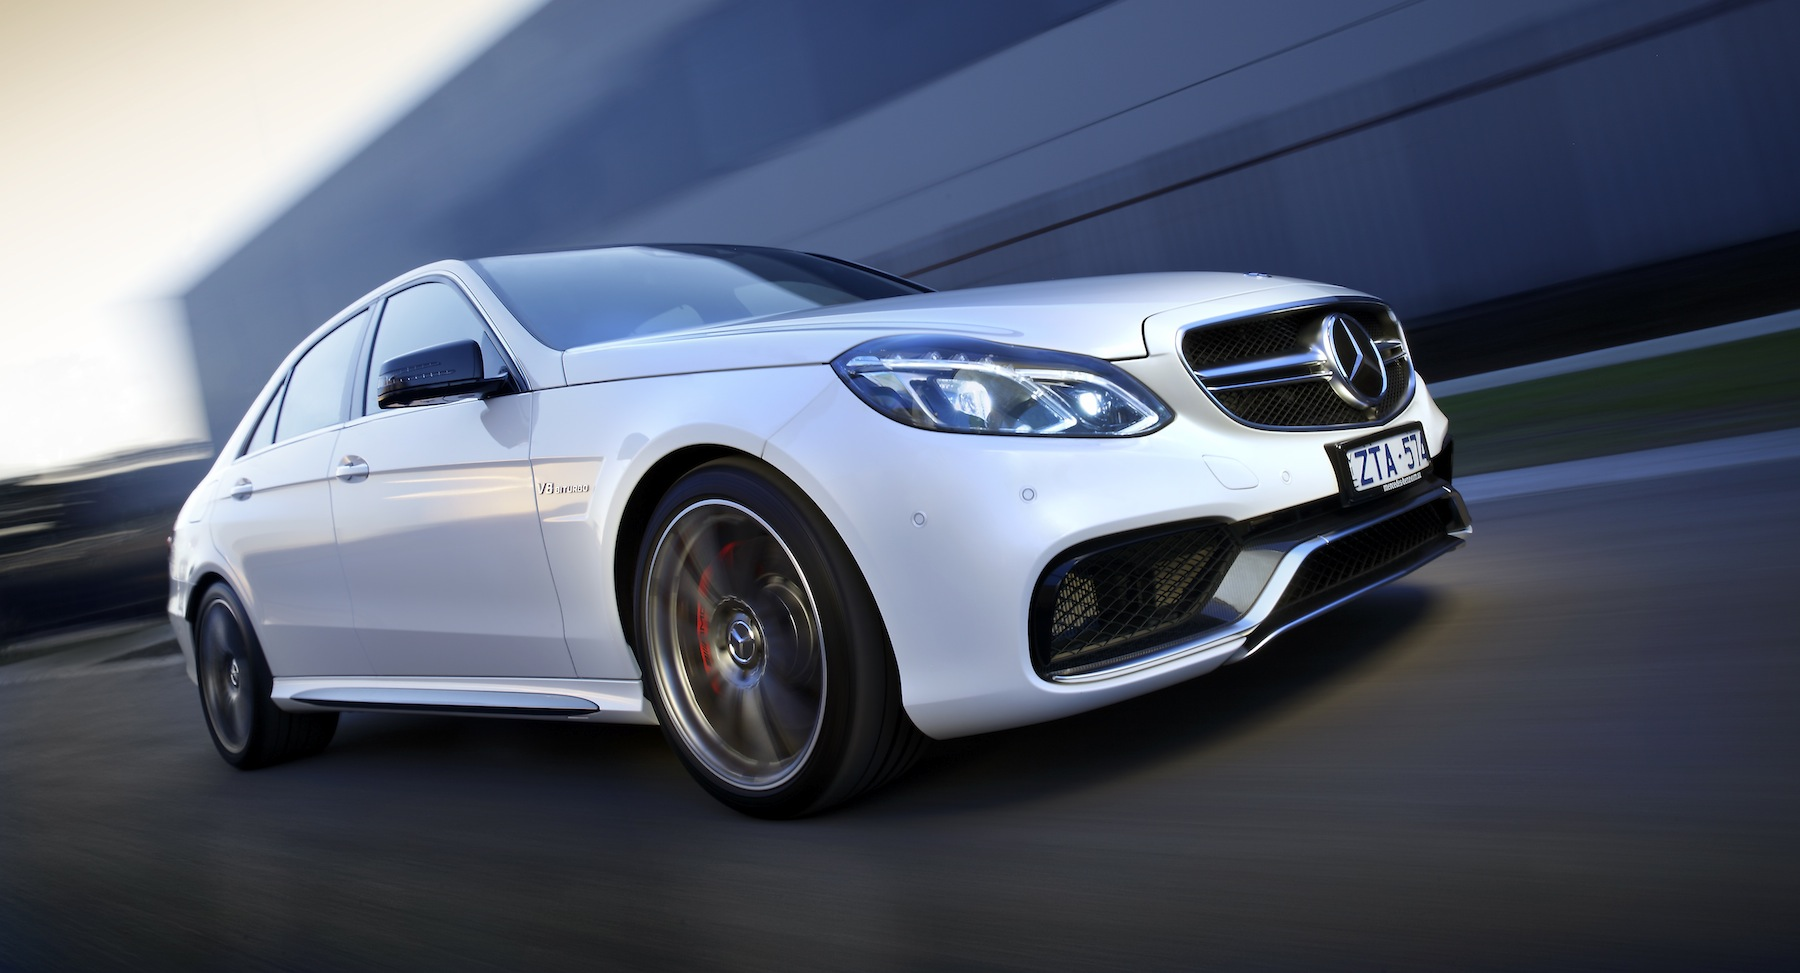 Mercedes benz e63 amg s model review caradvice for Mercedes benz e63 s amg